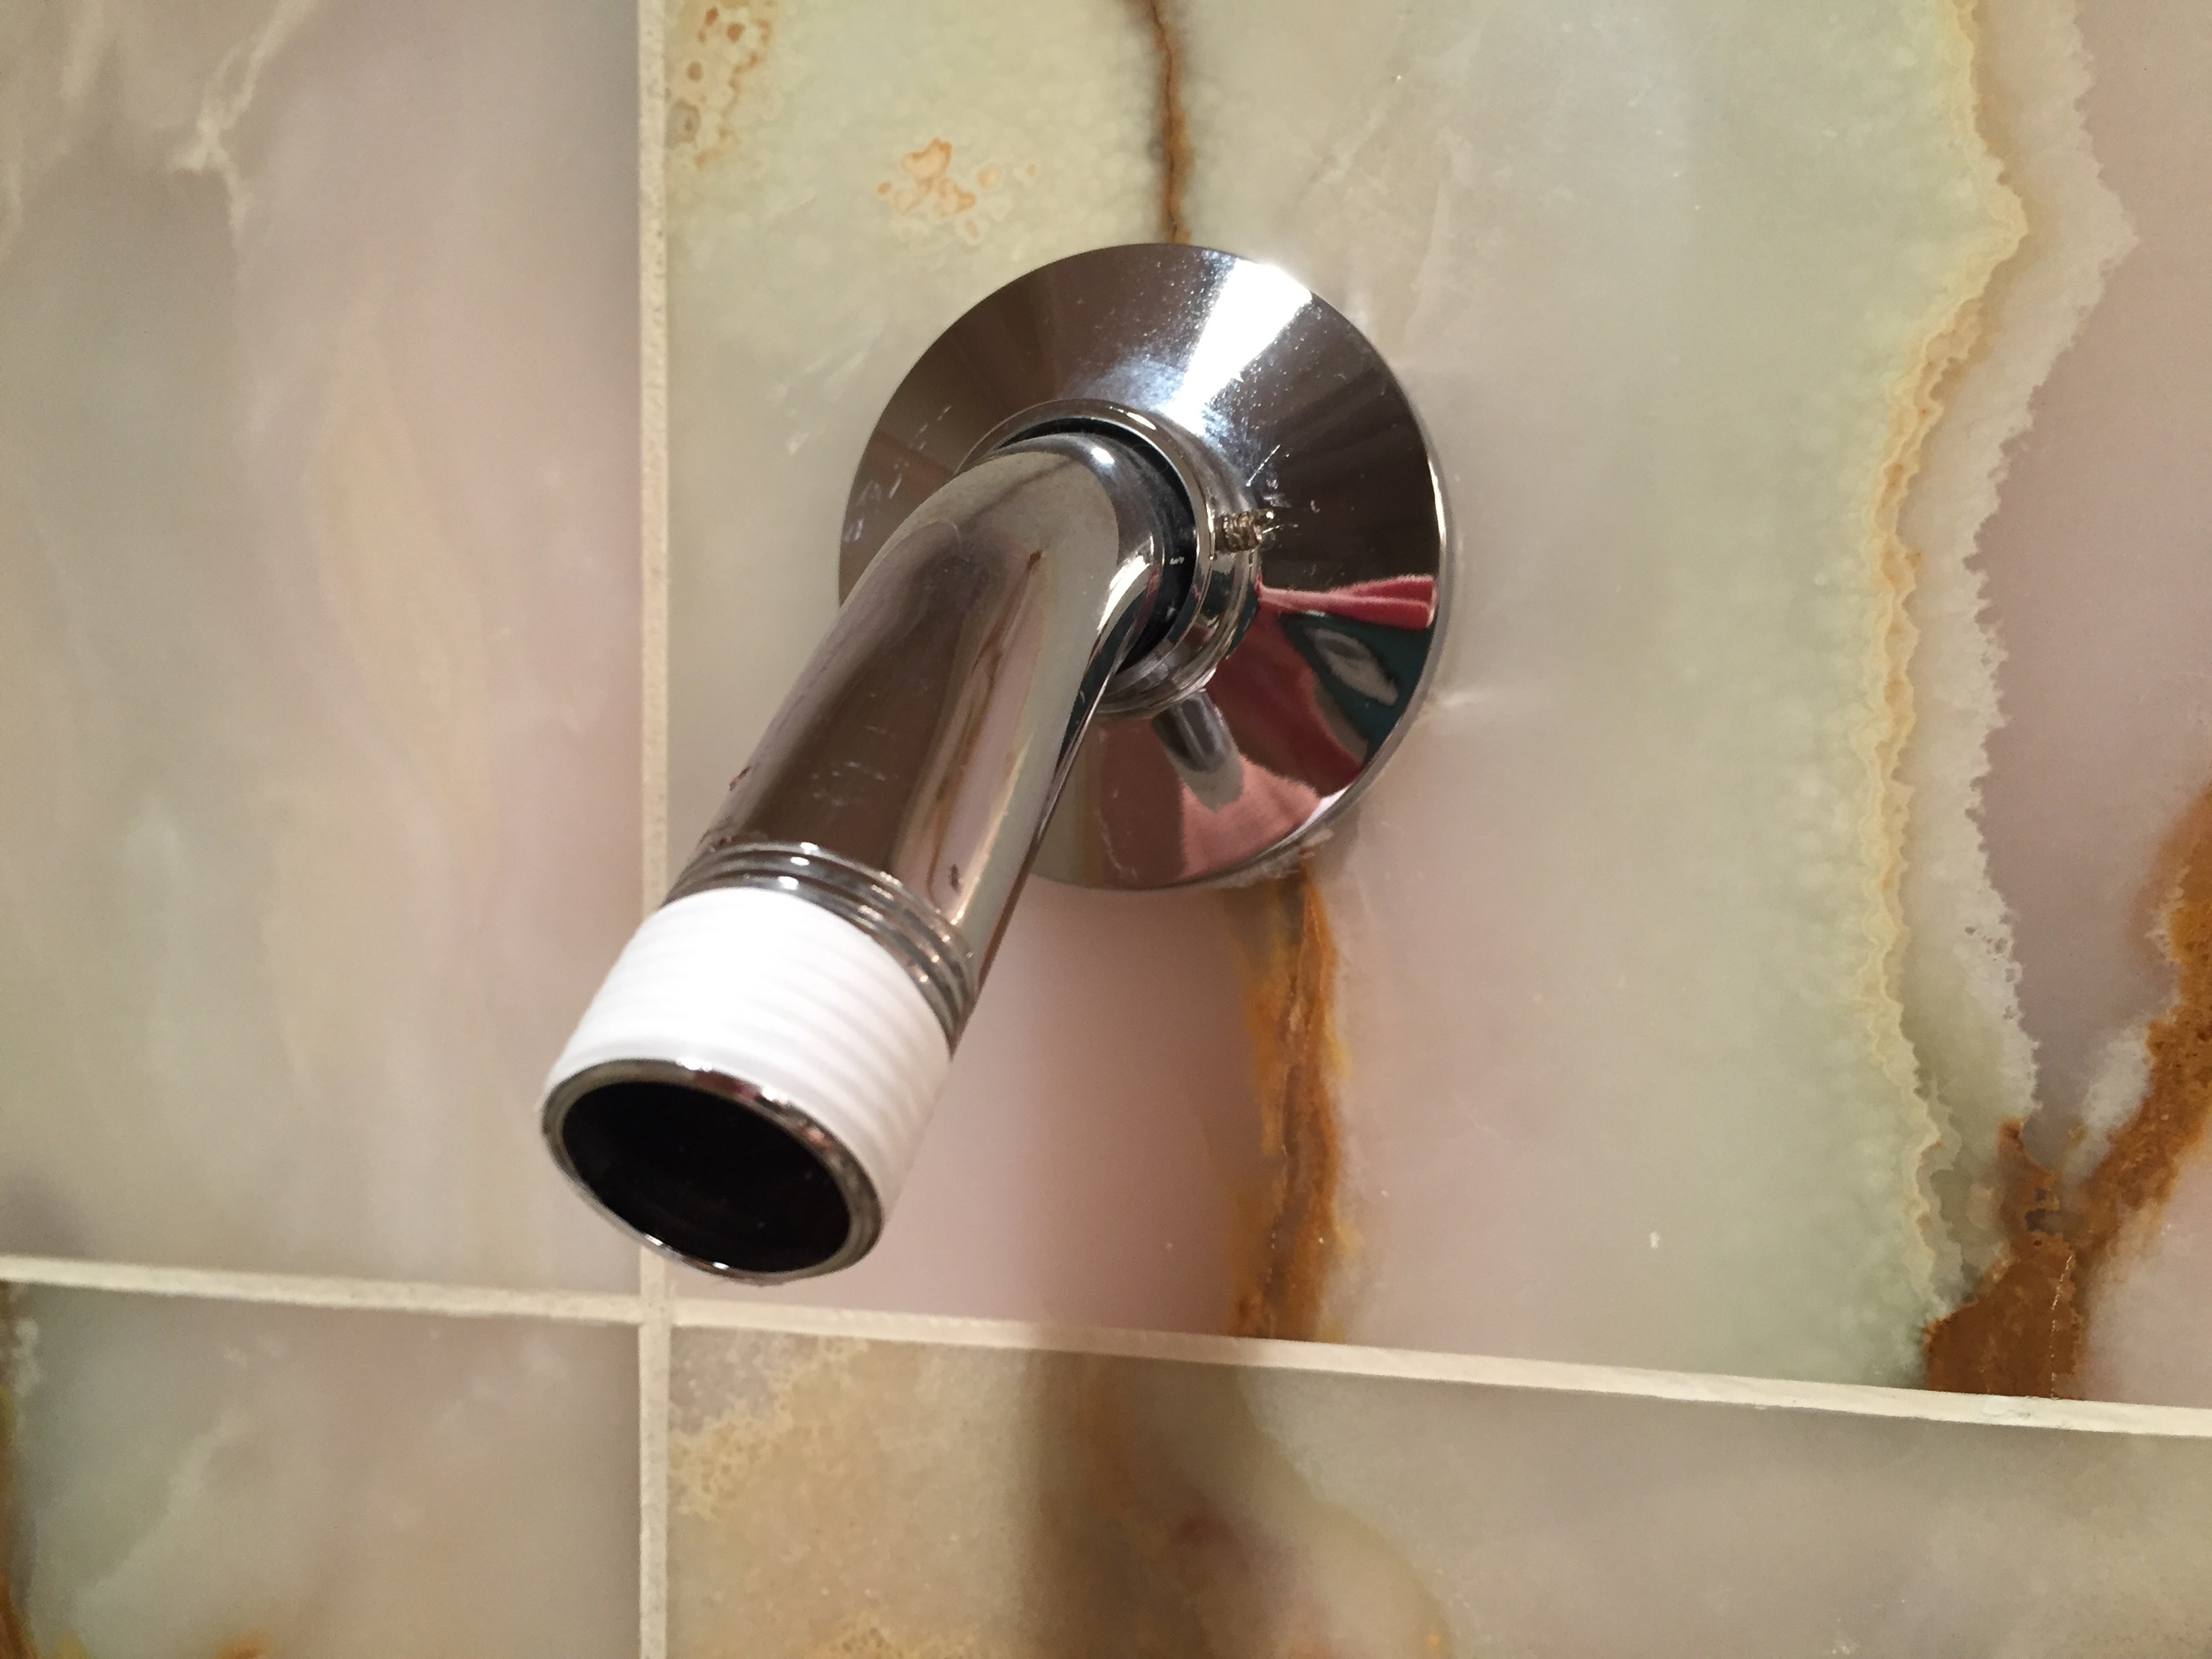 Cut the end of the plumber's tape, which adheres automatically to the pipe threads